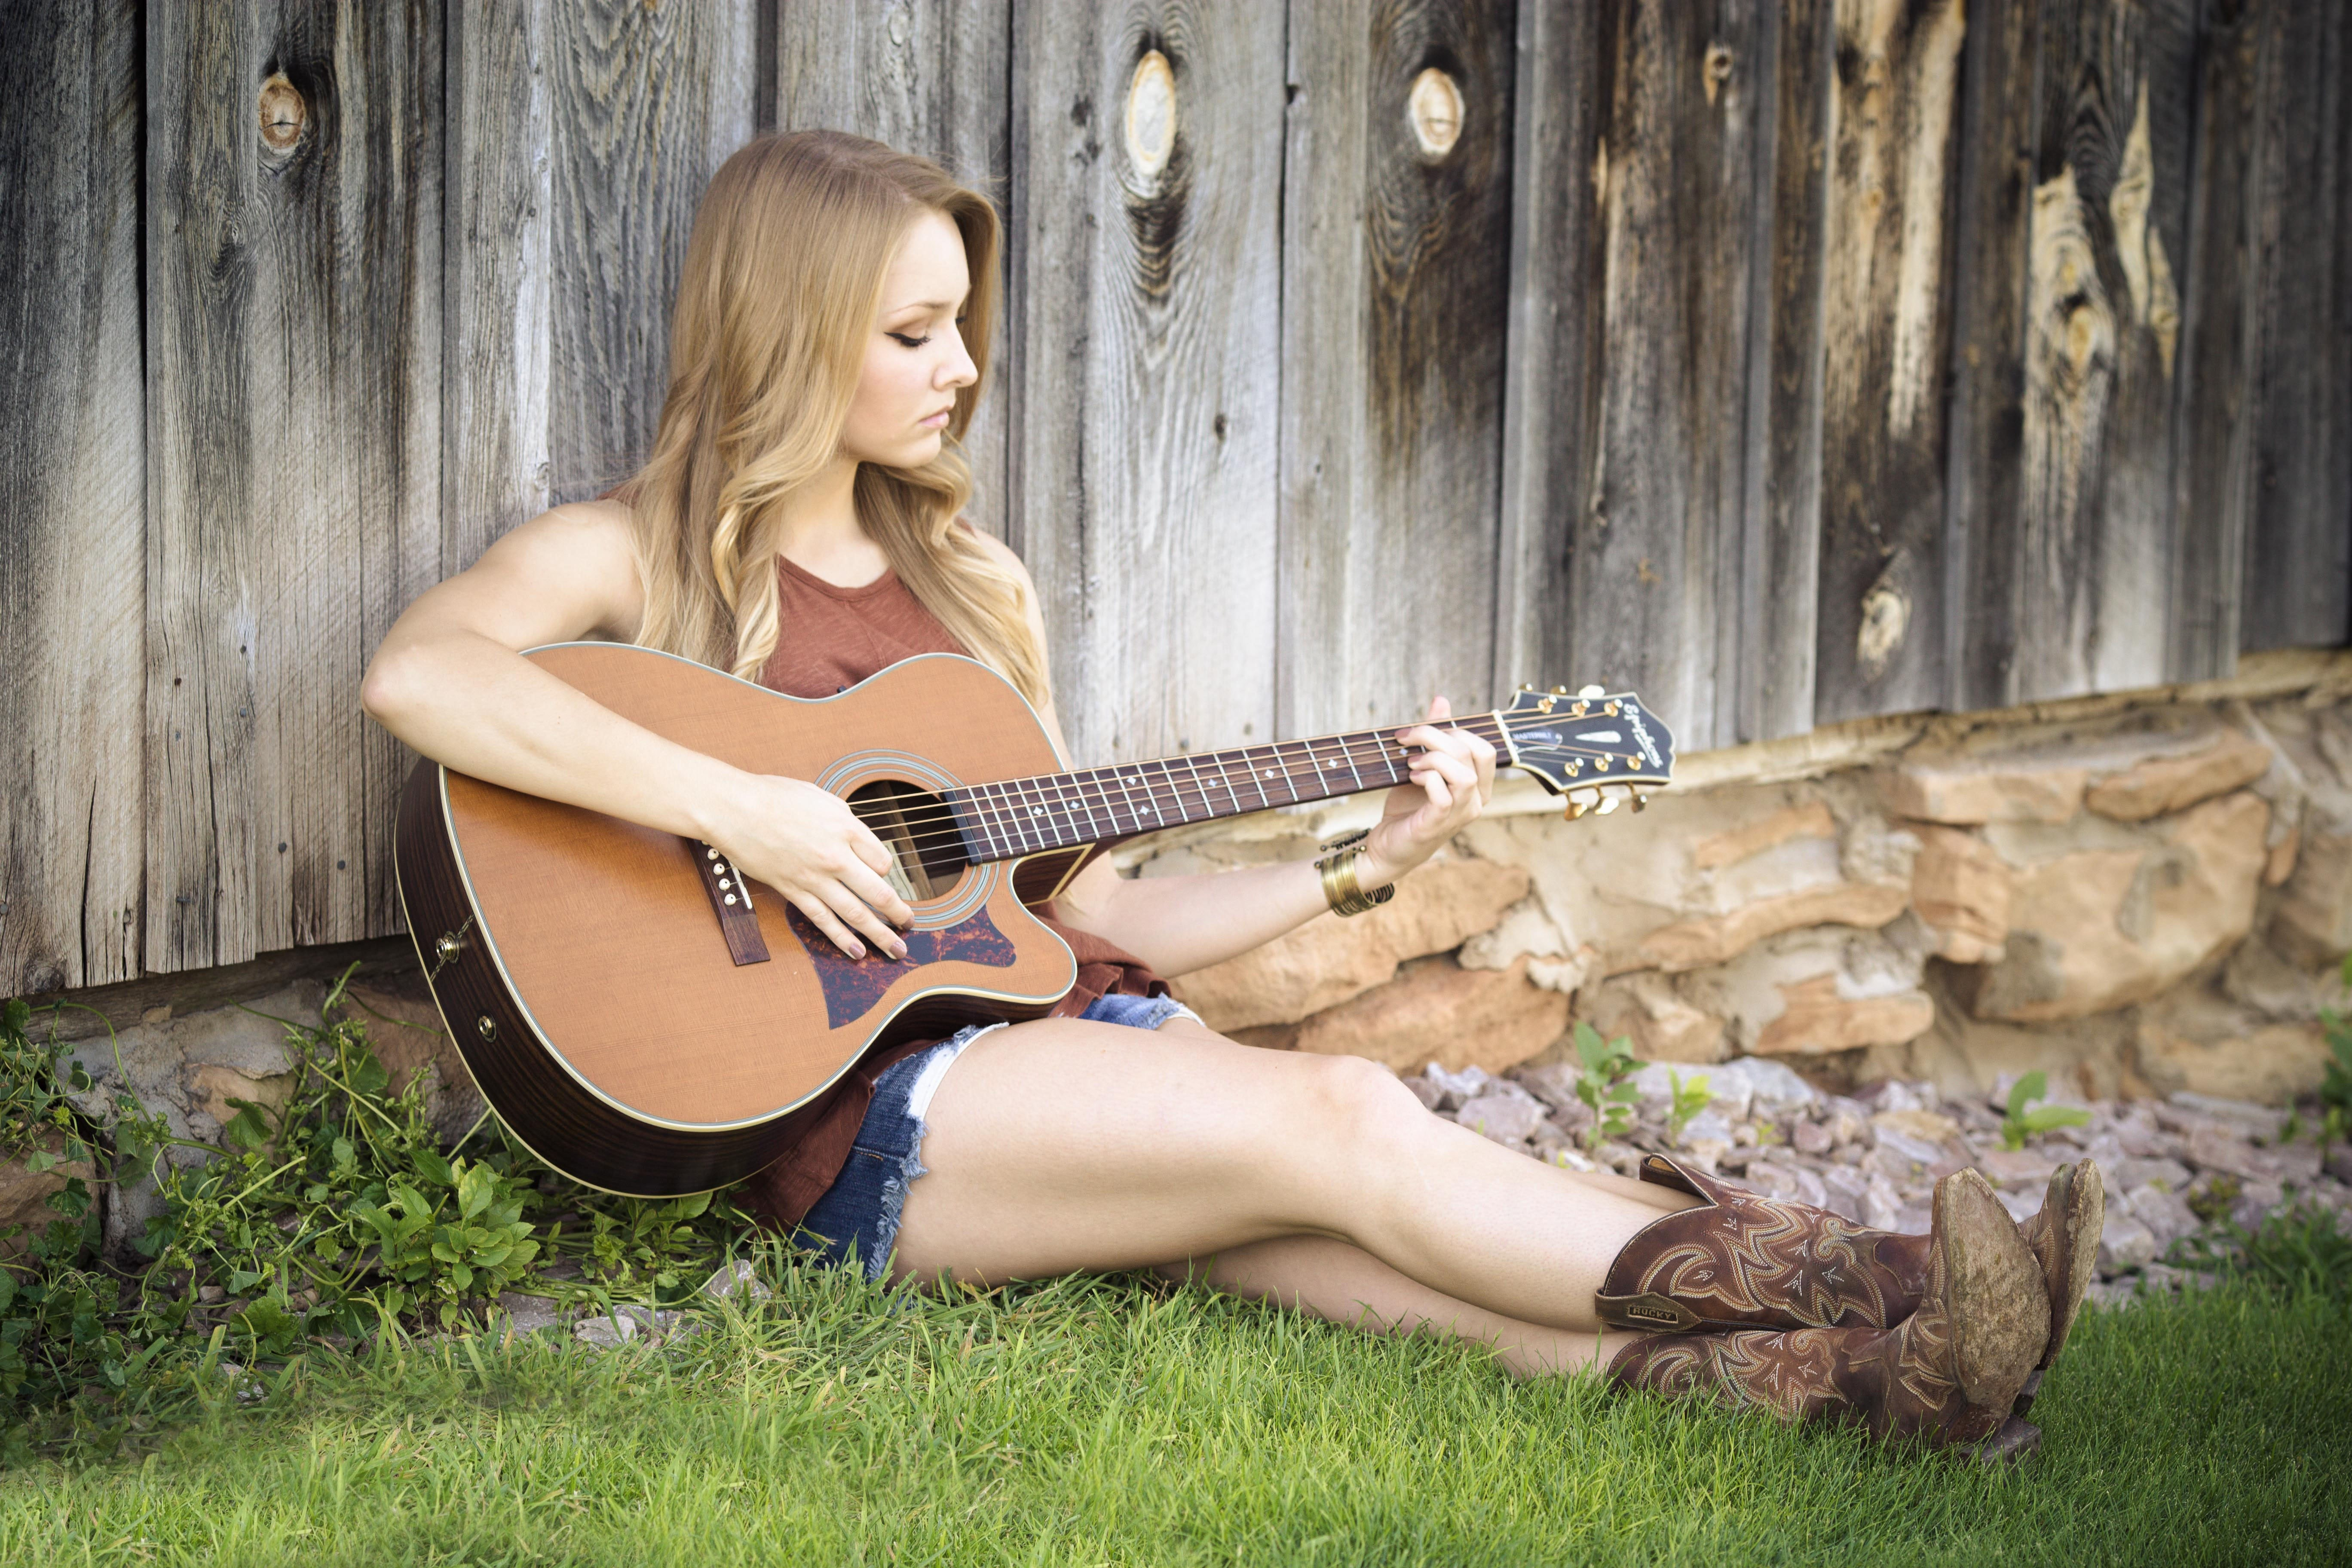 Woman in Brown Tank Top With Acoustic Guitar Sitting on Green Grass Beside Brown Wooden Fence, Acoustic guitar, Sexy, Outdoors, Person, HQ Photo